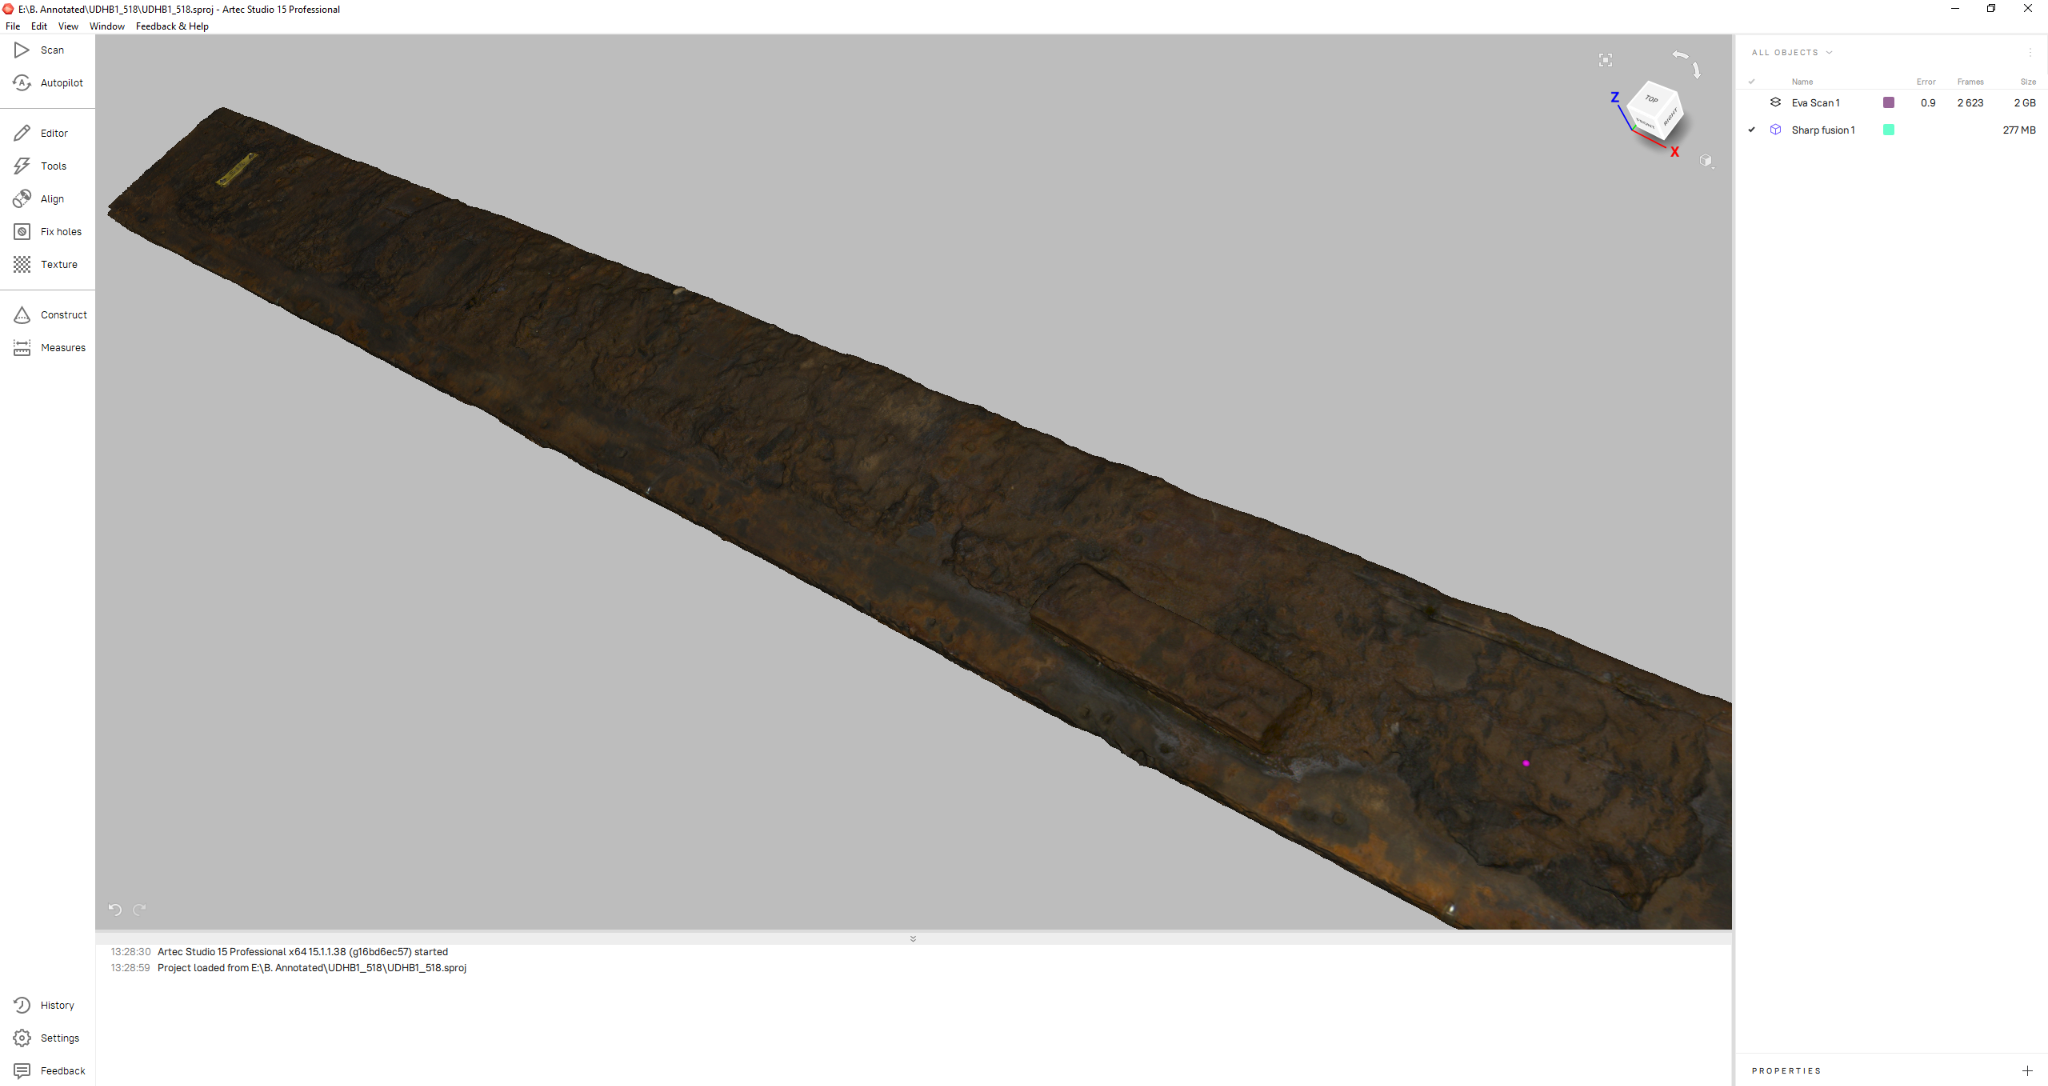 Scans are processed into a clean 3D model of the timber using Artec Studio. The 3D models can then be used by the archaeologists to record detailed information about each piece in Rhino by closely inspecting the physical timber and then annotating the 3D model. Image via Sydney Metro.